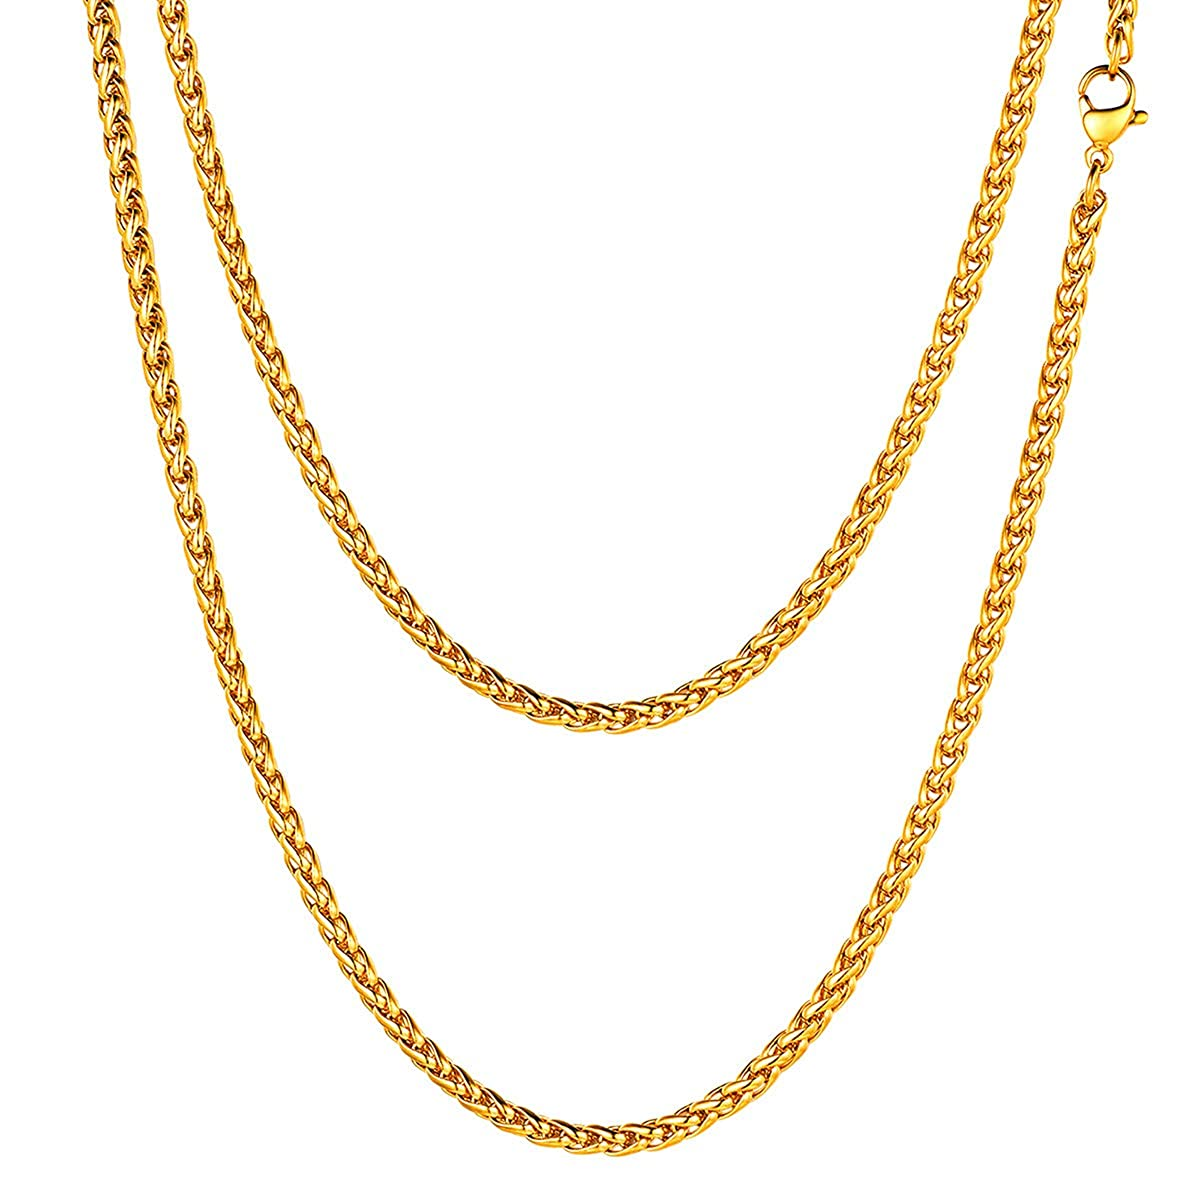 a06292fc53048 FOCALOOK 3MM Wheat Chain Necklace for Men Jewelry, 316L Stainless Steel/18K  Gold Plated/Black Chain Necklace,18''/20''/22''/24''/26''/28''/30